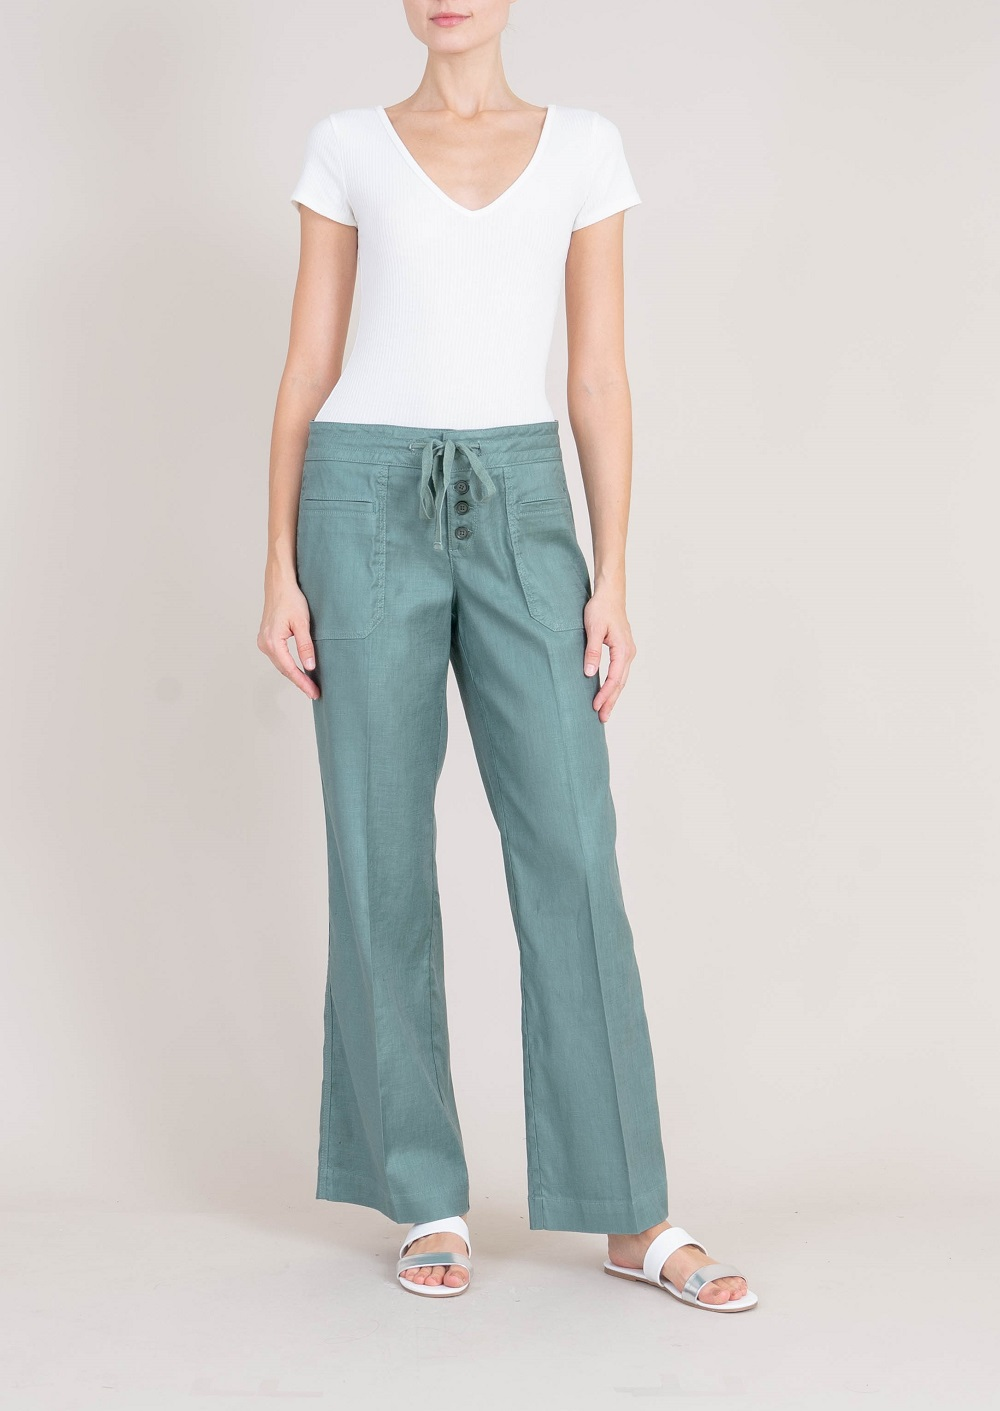 Violet Lounge Linen Pants by Level 99